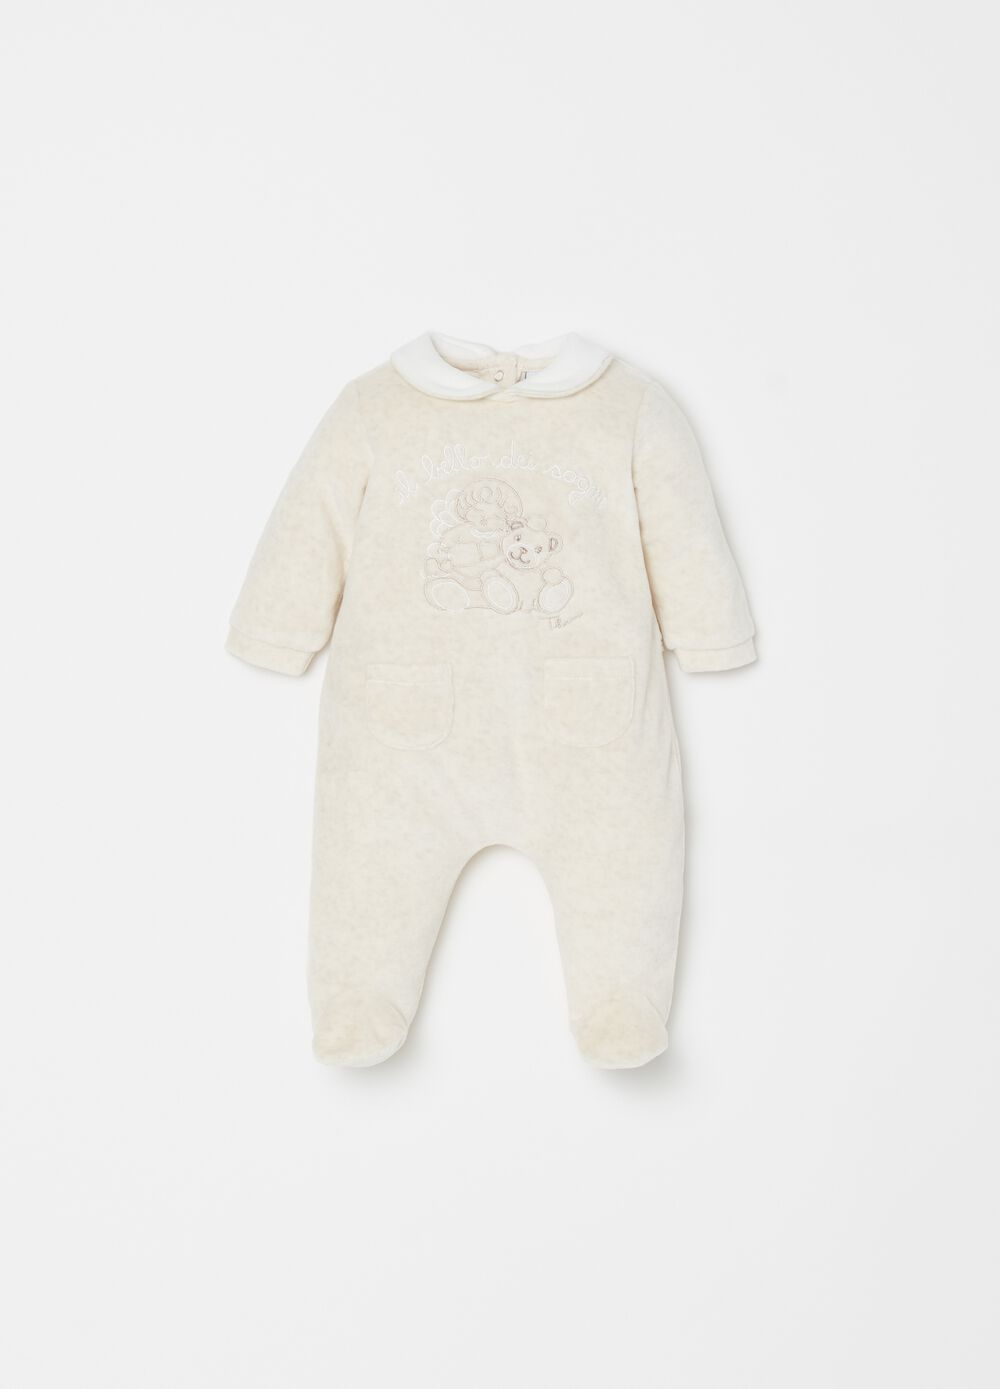 THUN Teddy onesie with feet and small pocket